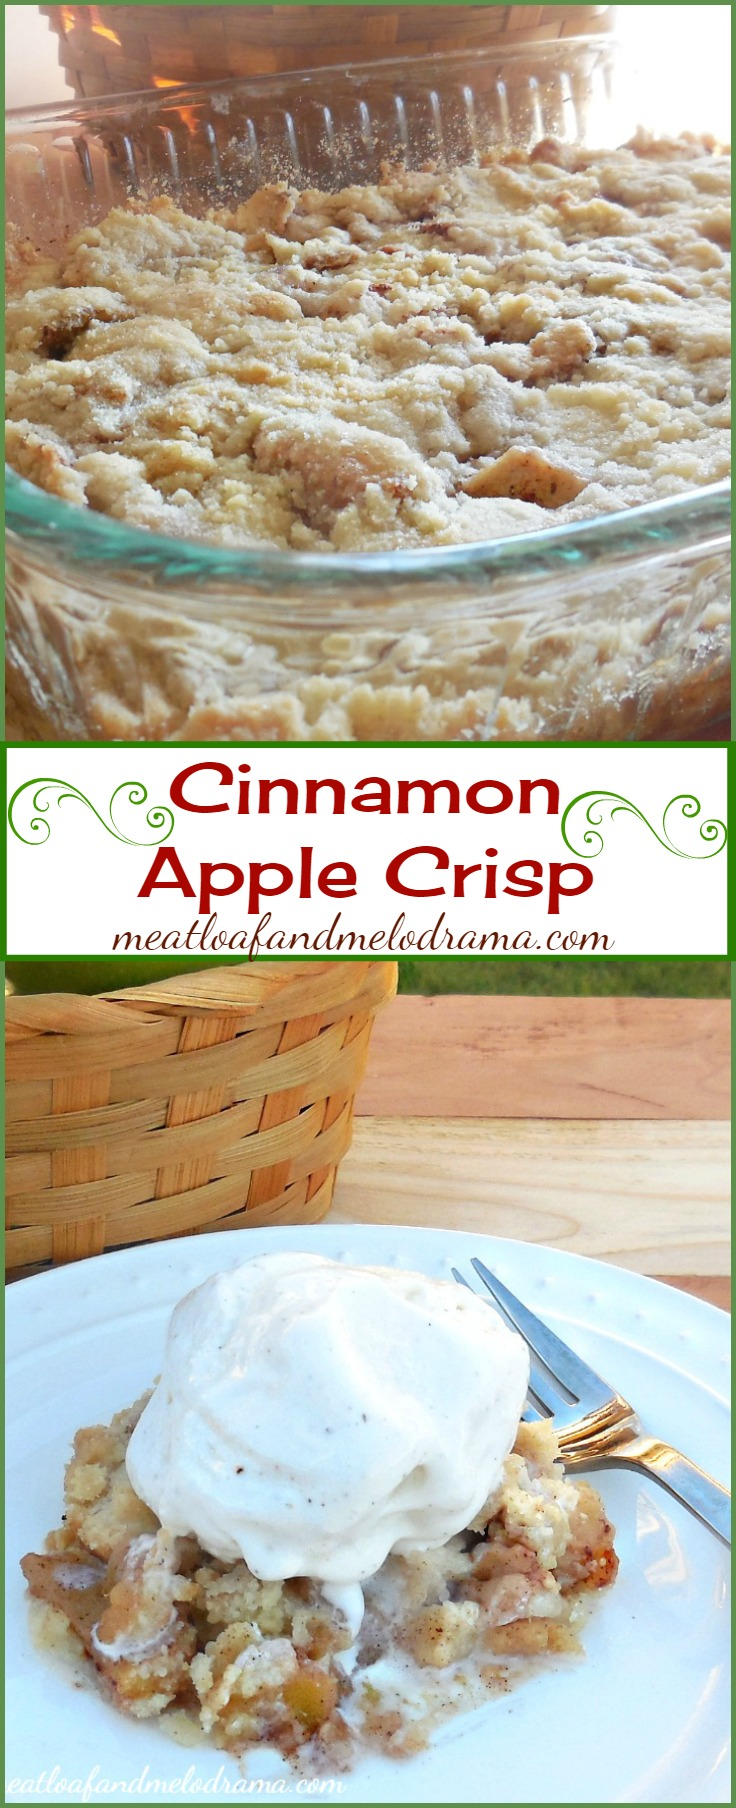 We had this tasty cinnamon apple crisp for dessert last night, and ...